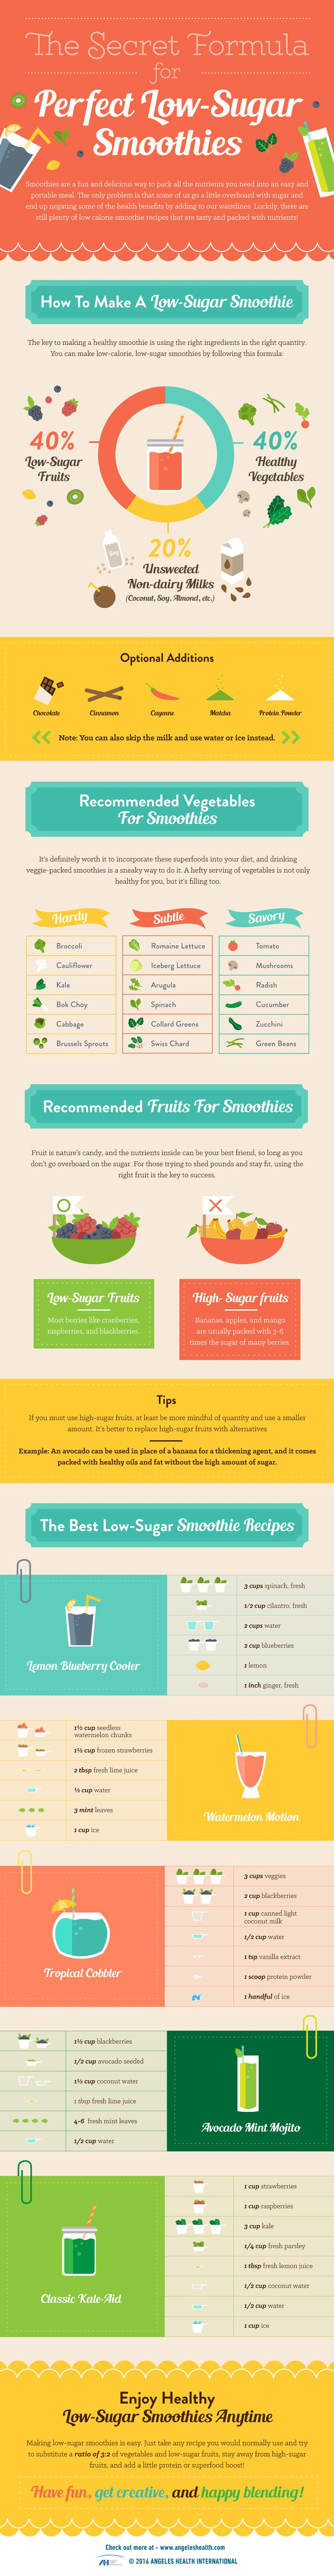 The Secret Formula for Perfect Low Sugar Smoothies #Infographic #Food